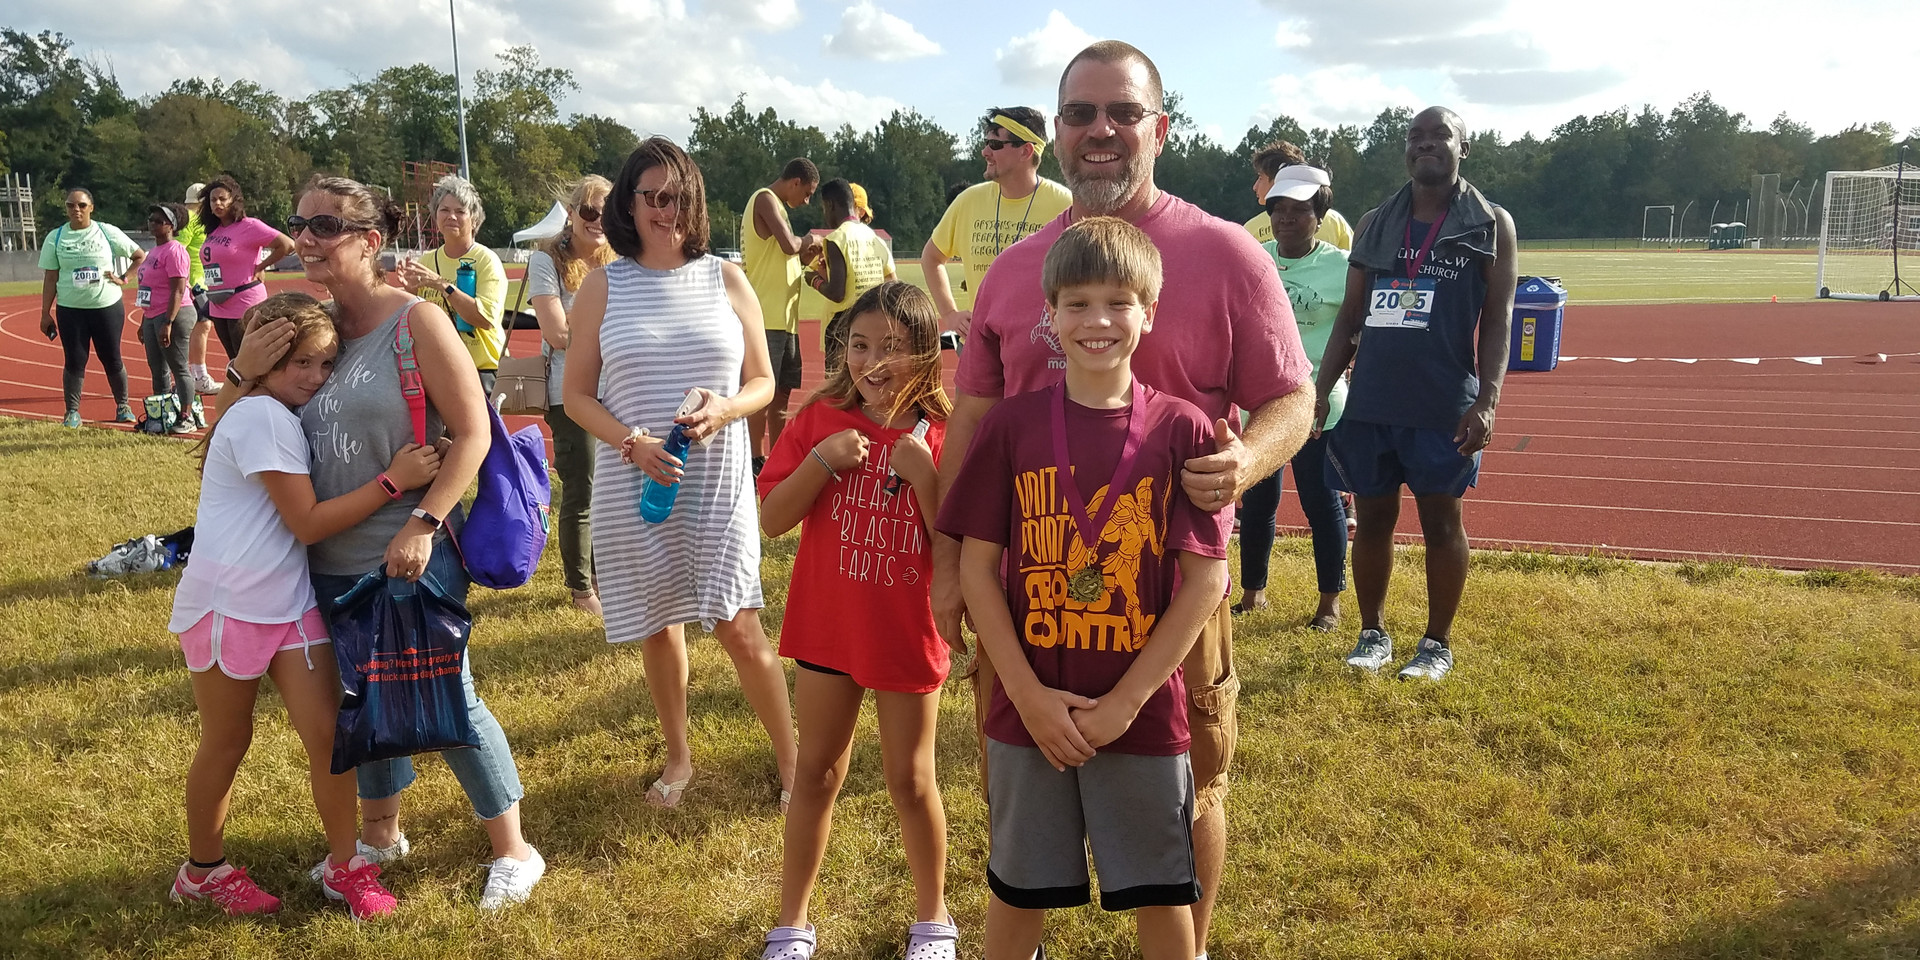 Middle School Boys' Mile 1st-place medalist and family are all smiles